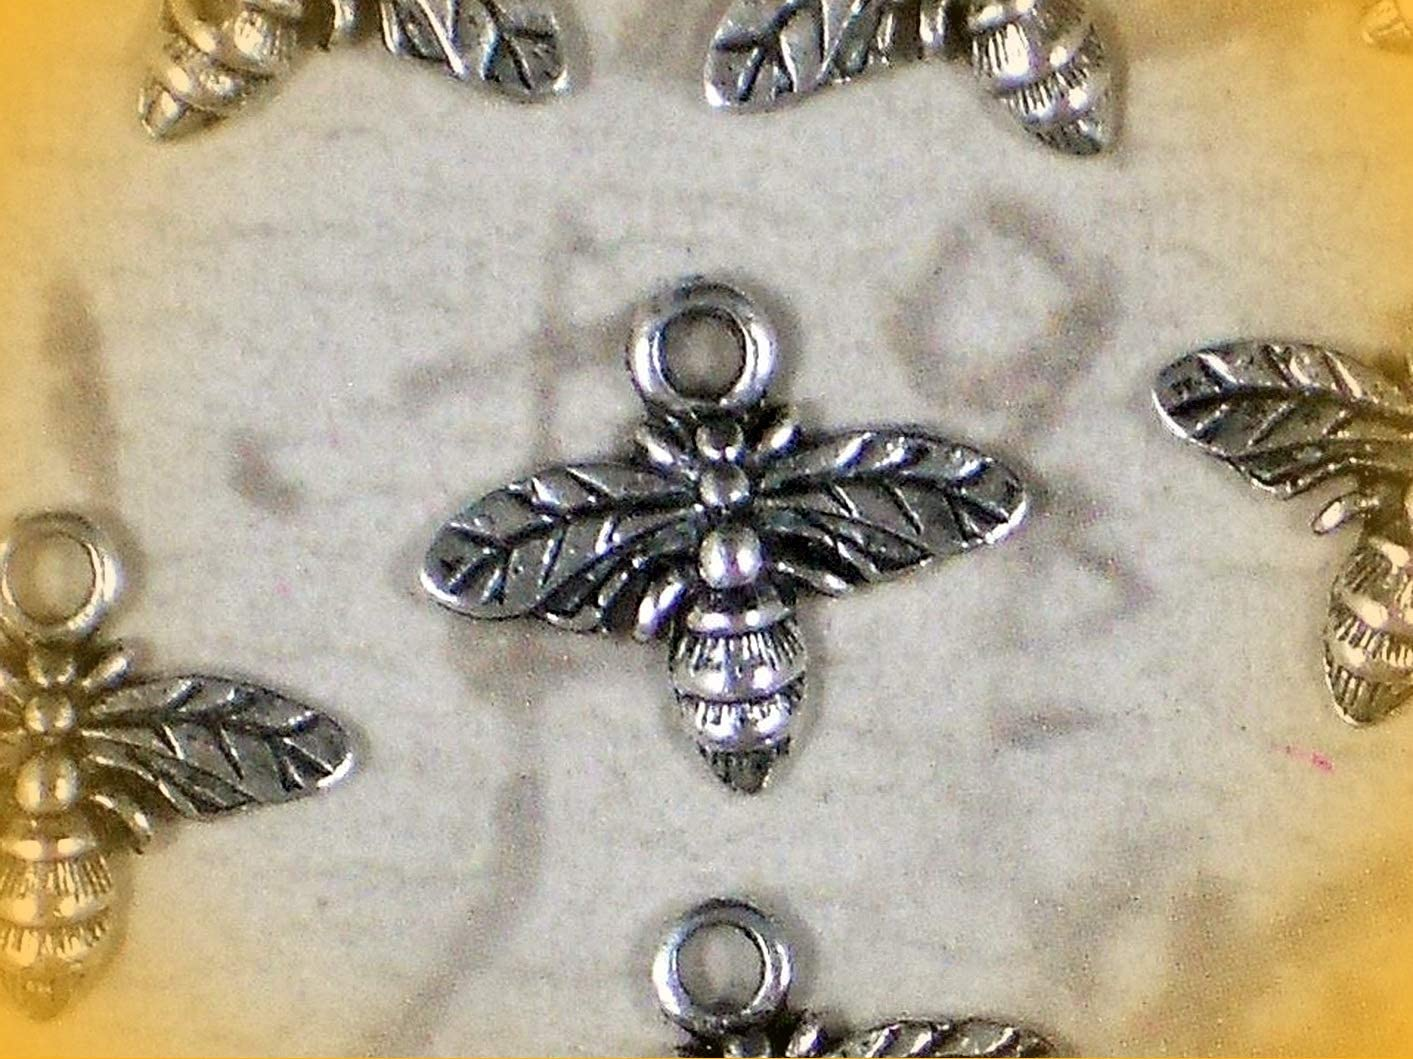 16 Honey BEE Charms Silver Tone 13mm x 15mm Antiqued Adorable Charms and More for Your own Designs by CharmingStuffS